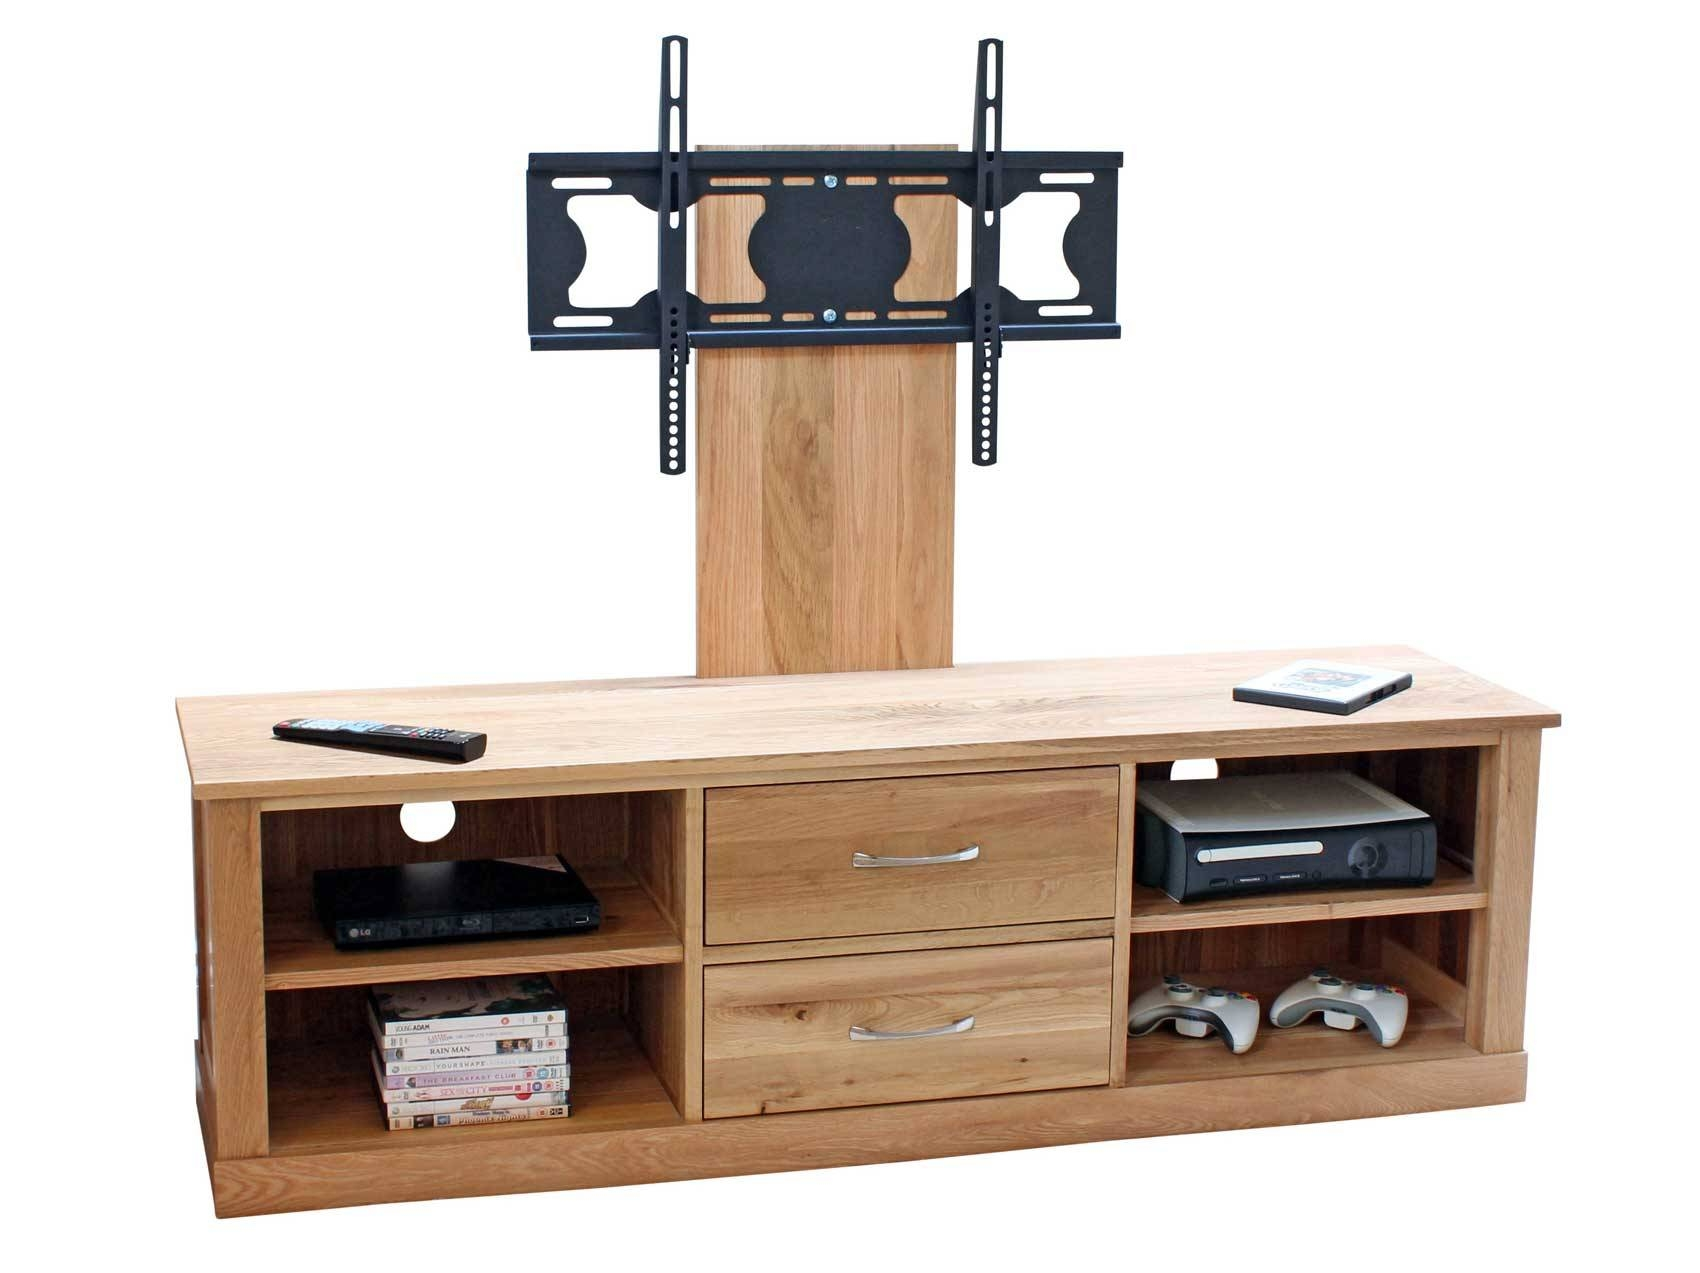 Oak Wooden Tv Stand With Mount For Flat Screen Of 14 Gorgeous Inside Corner Oak Tv Stands For Flat Screen (View 4 of 15)